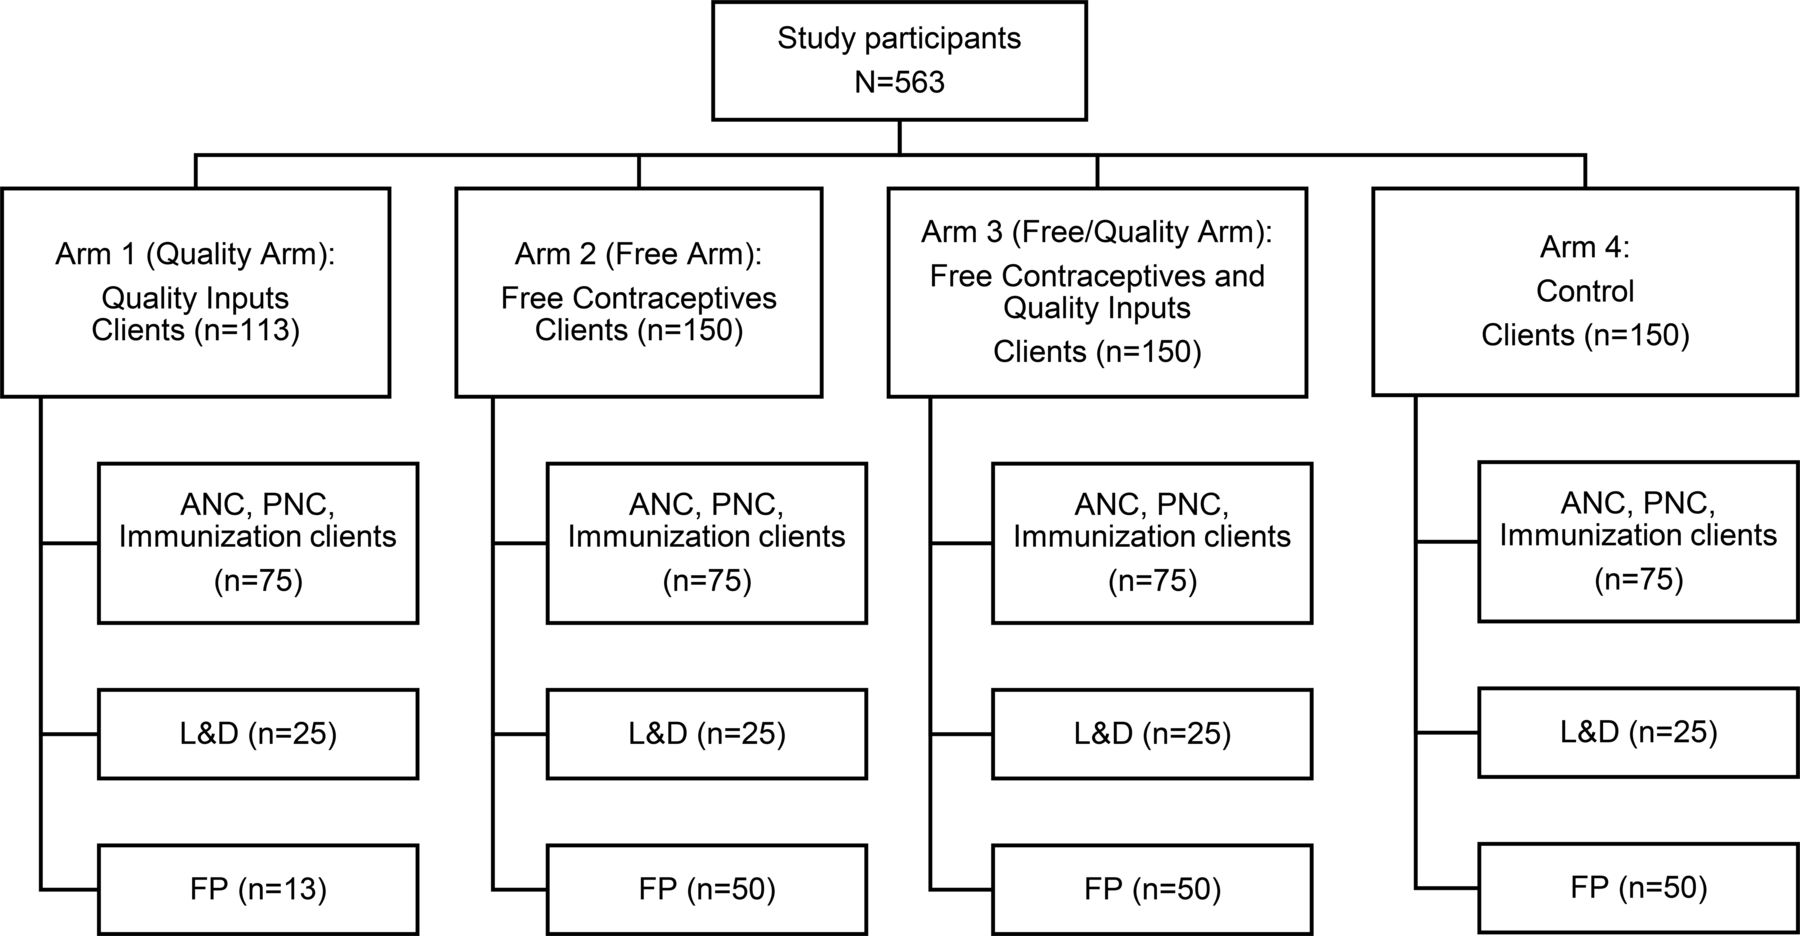 Quality and Cost Interventions During the Extended Perinatal Period